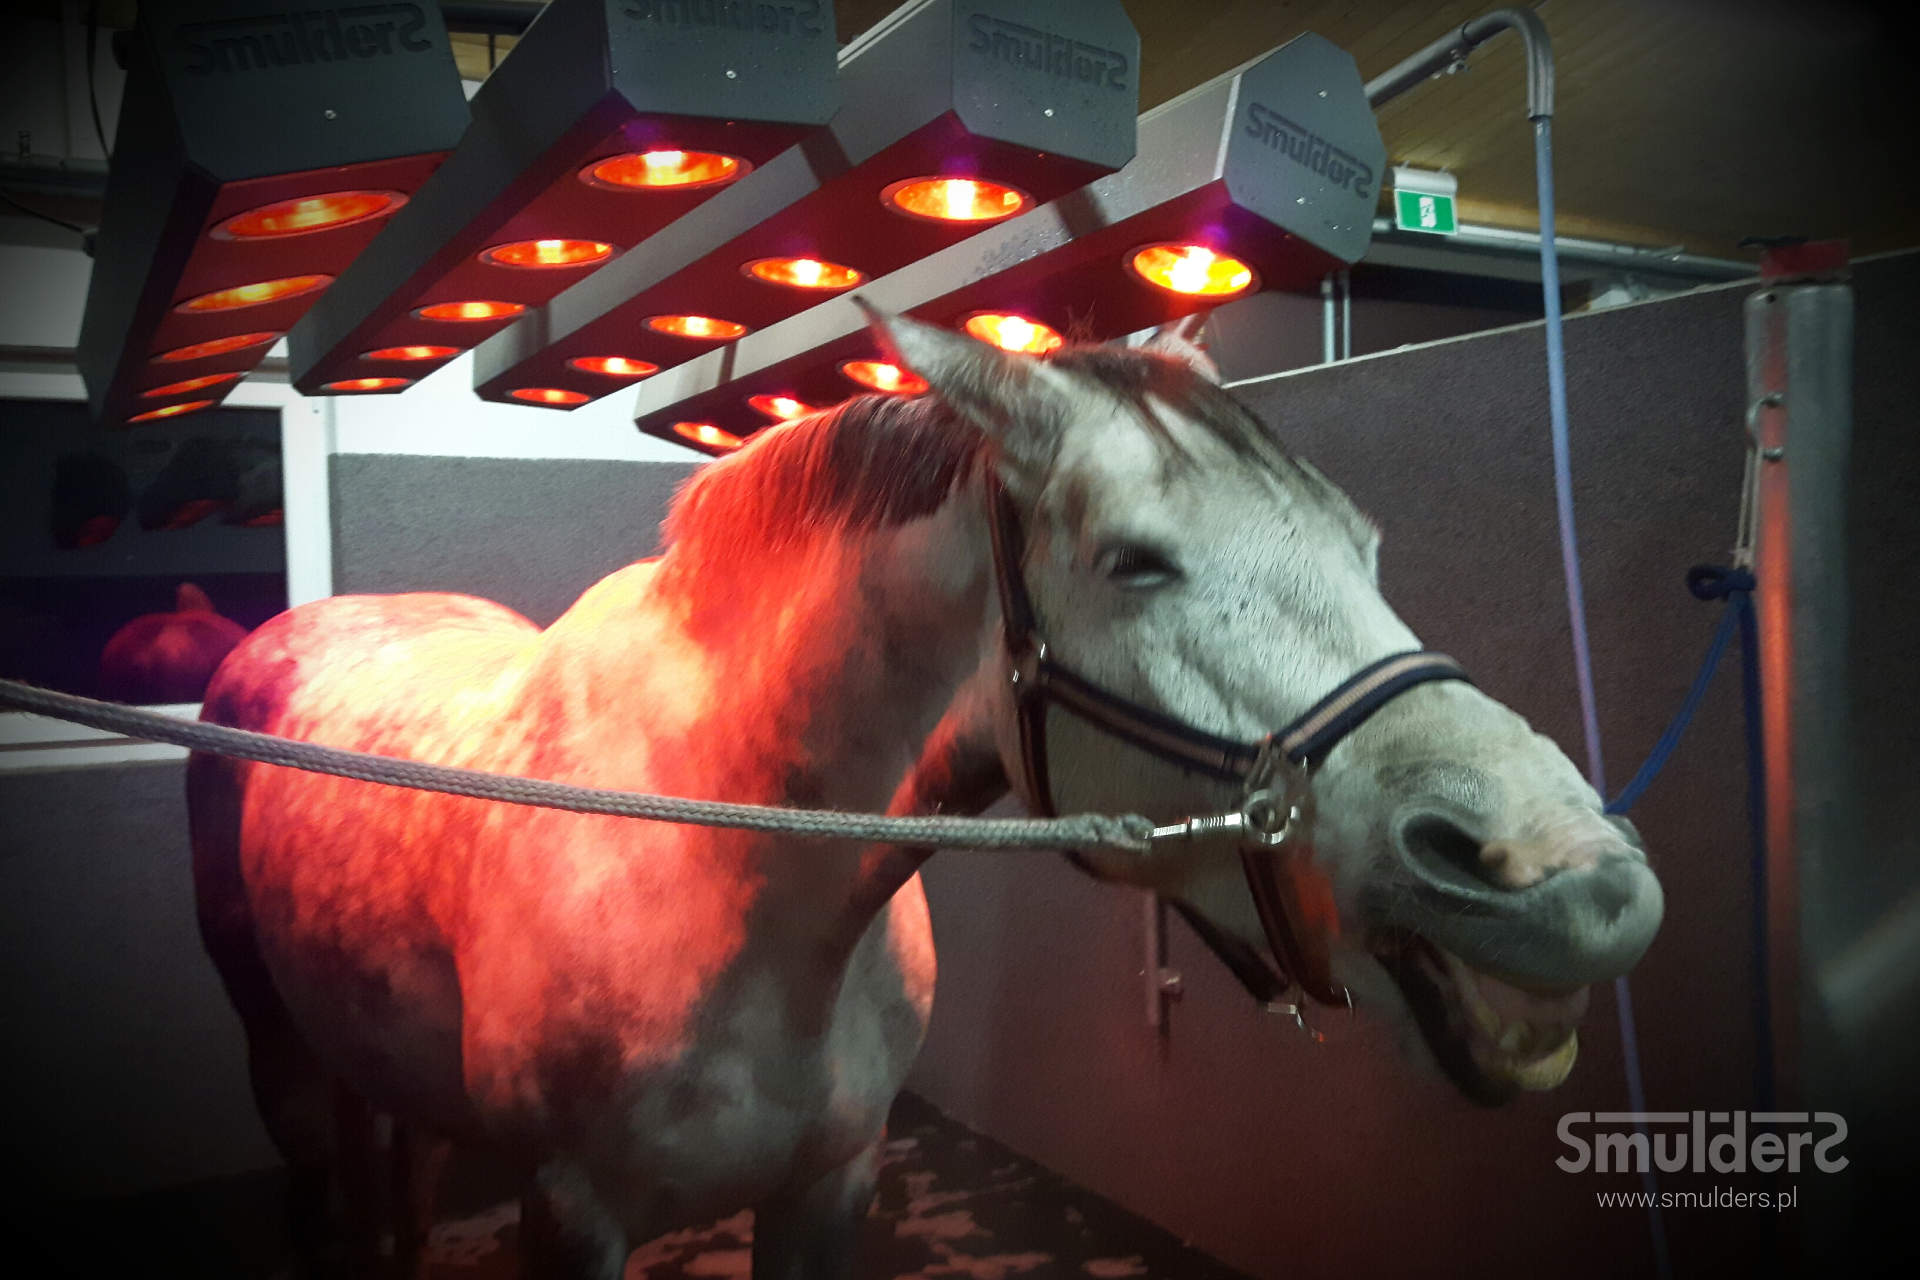 http://www.smulders.pl/wp-content/uploads/2019/02/f008_horse-solariums_solarium-for-horses_SMULDERS_PL.jpg